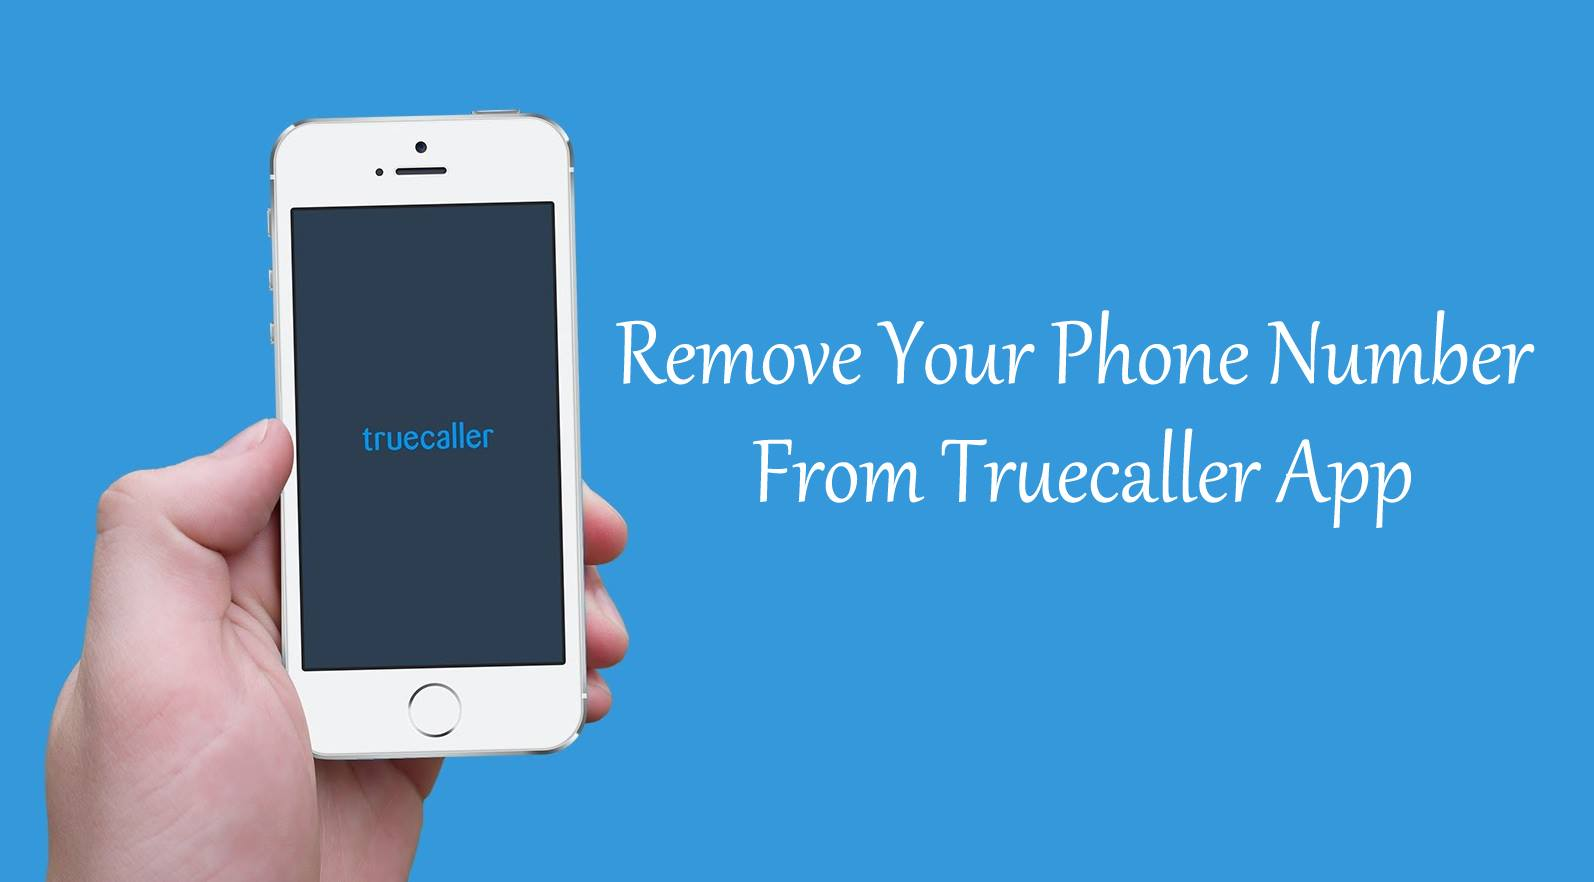 How To Remove Your Phone Number From Truecaller App